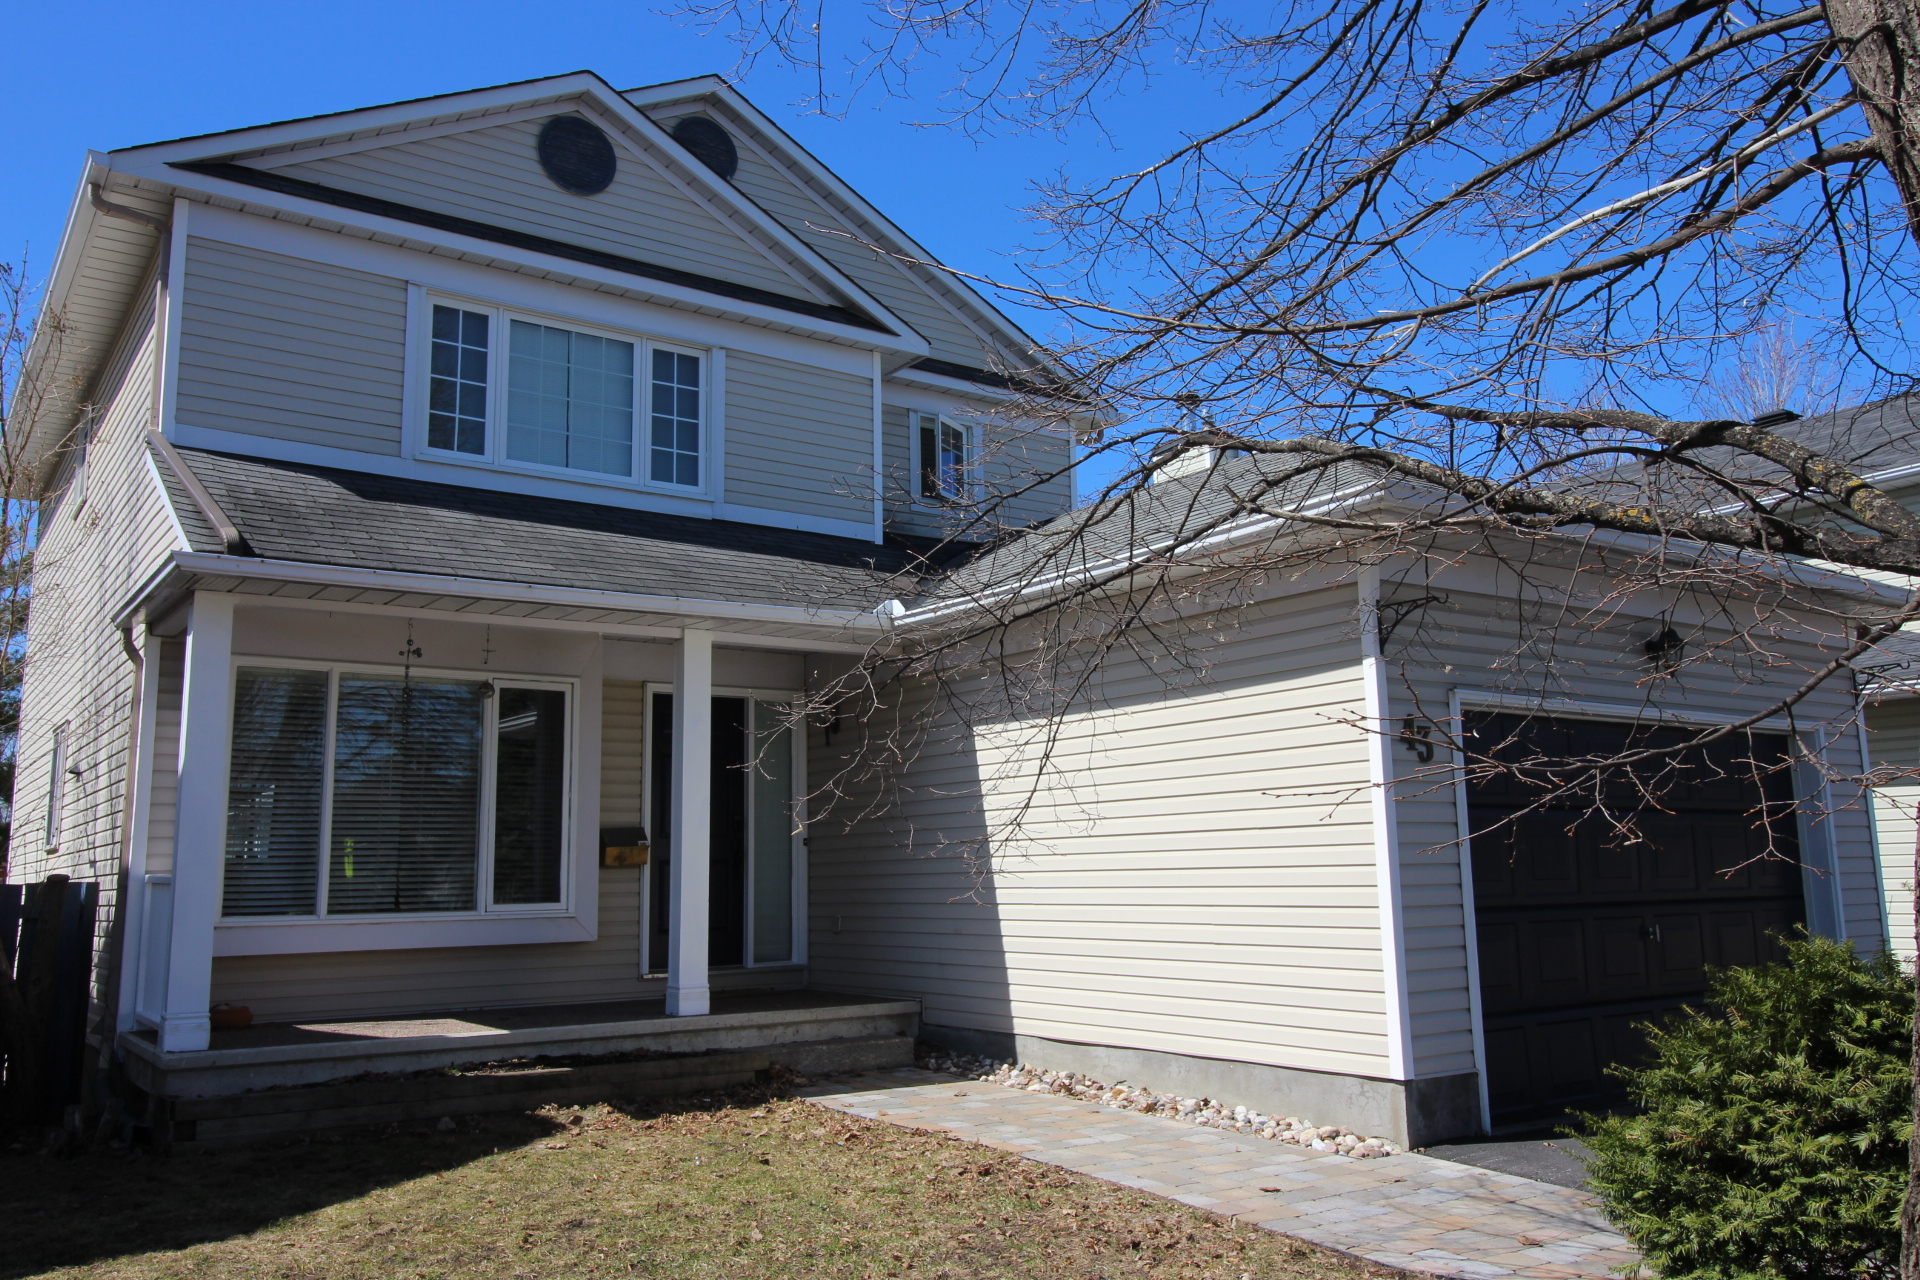 43 Wheeler St - Gorgeous Detached Home, Fully Finished Basement, in highly desired Barrhaven!